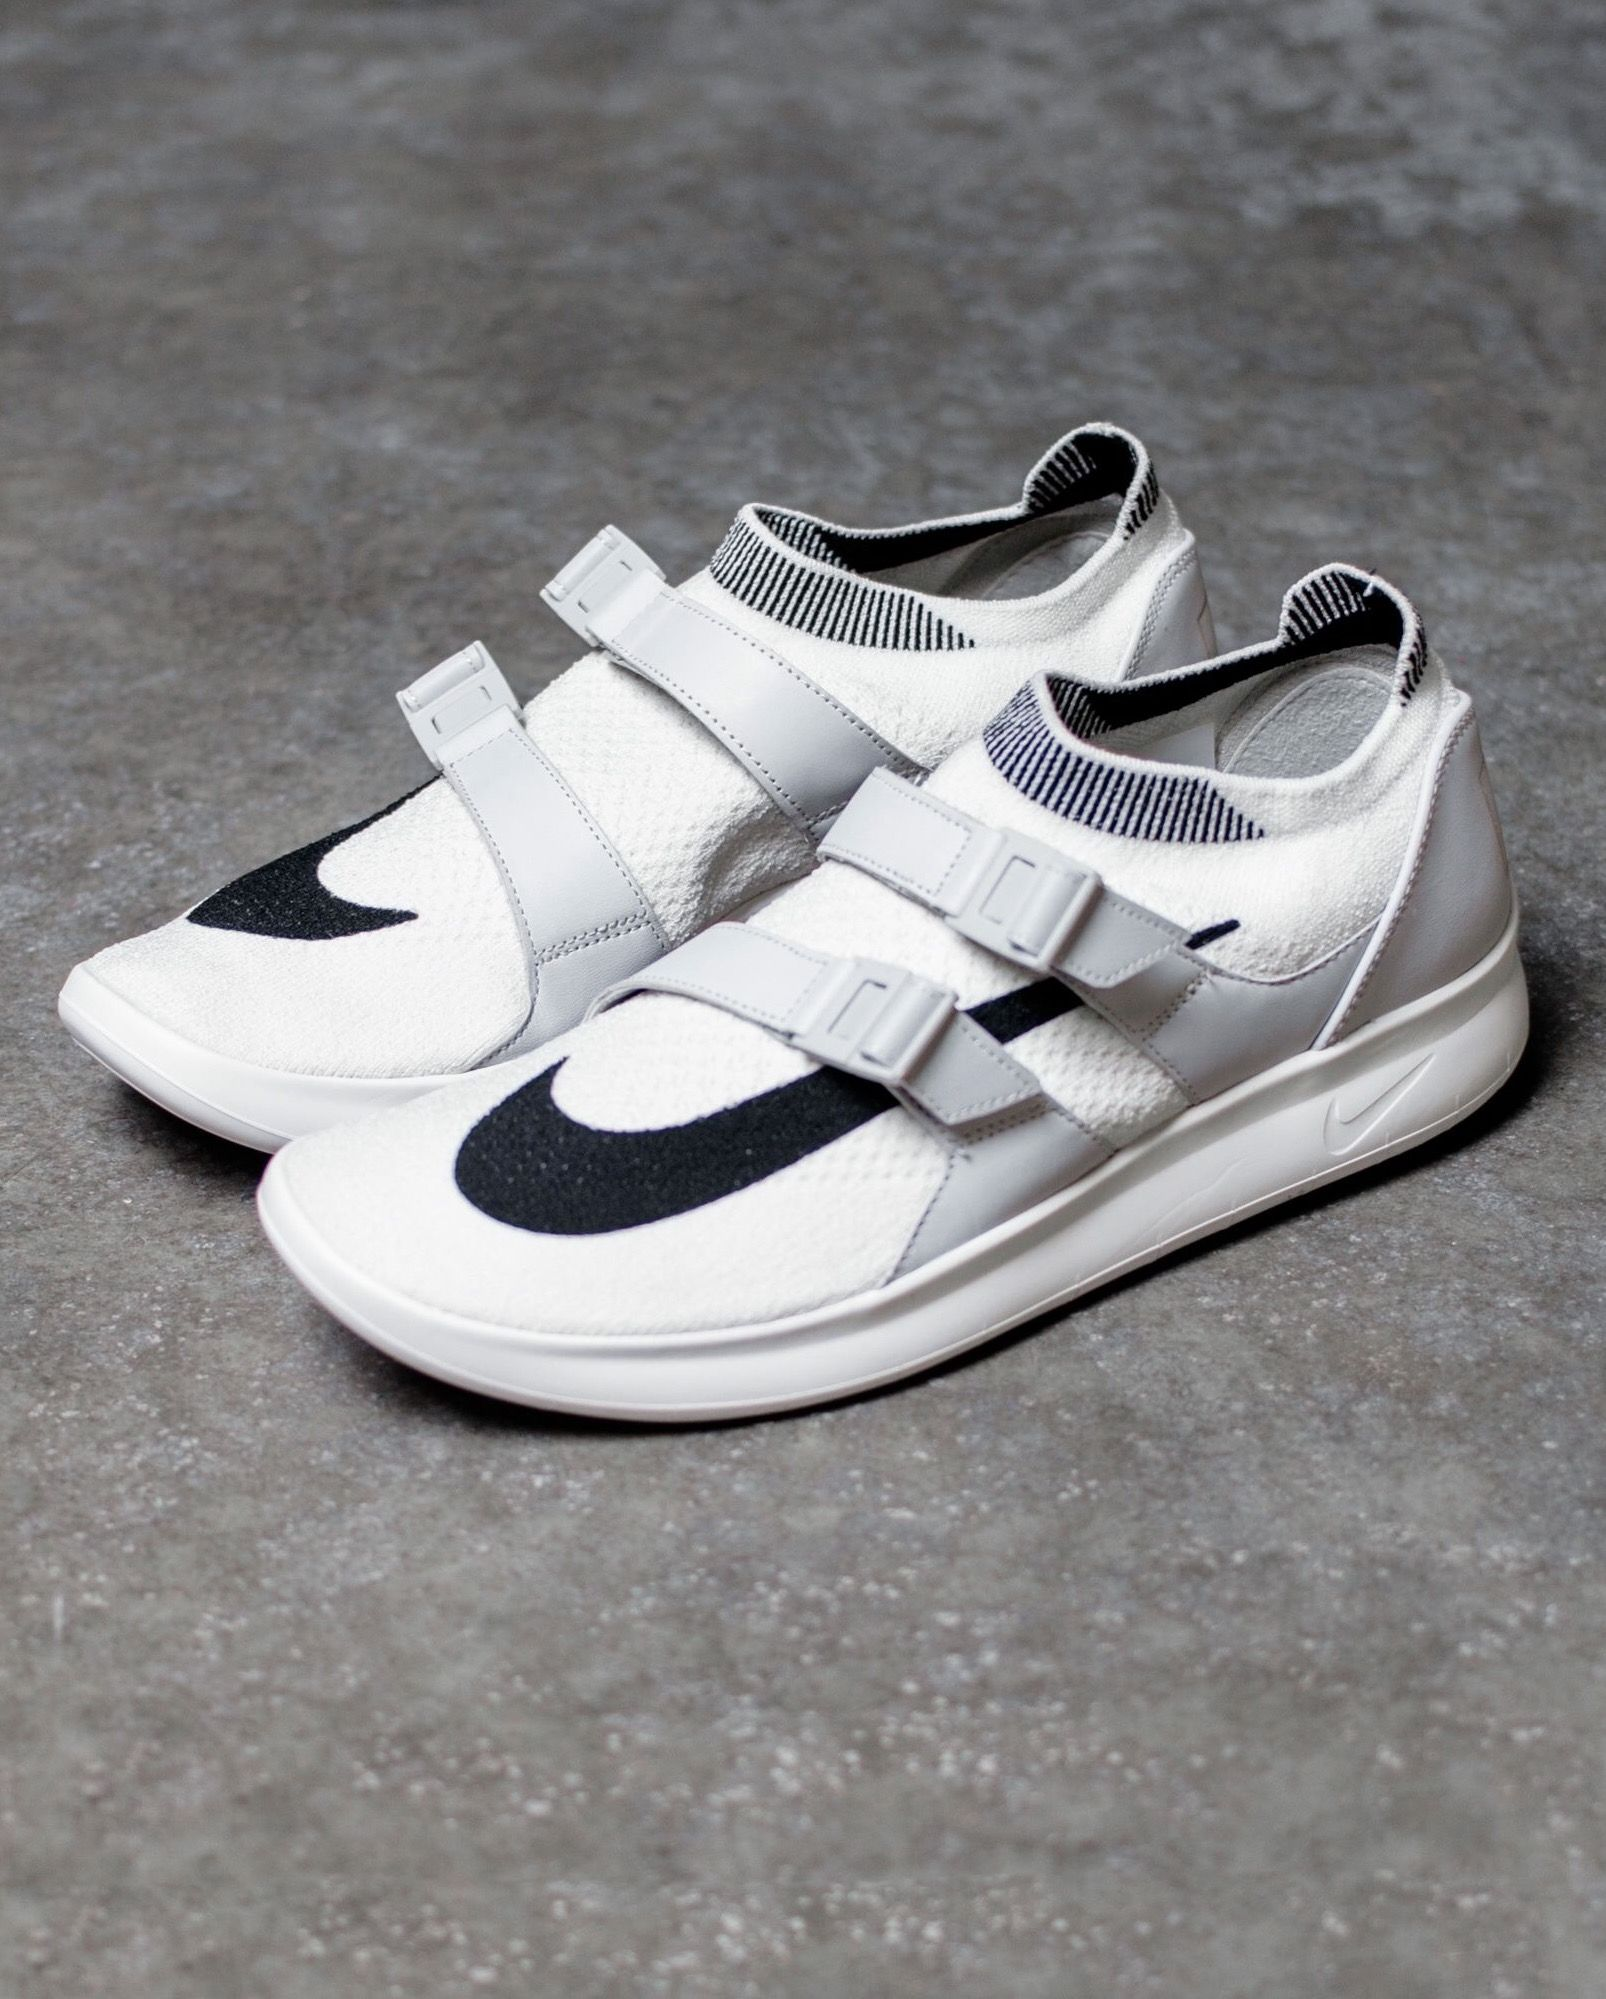 new product a5fc0 956a9 Nike Air Sock Racer